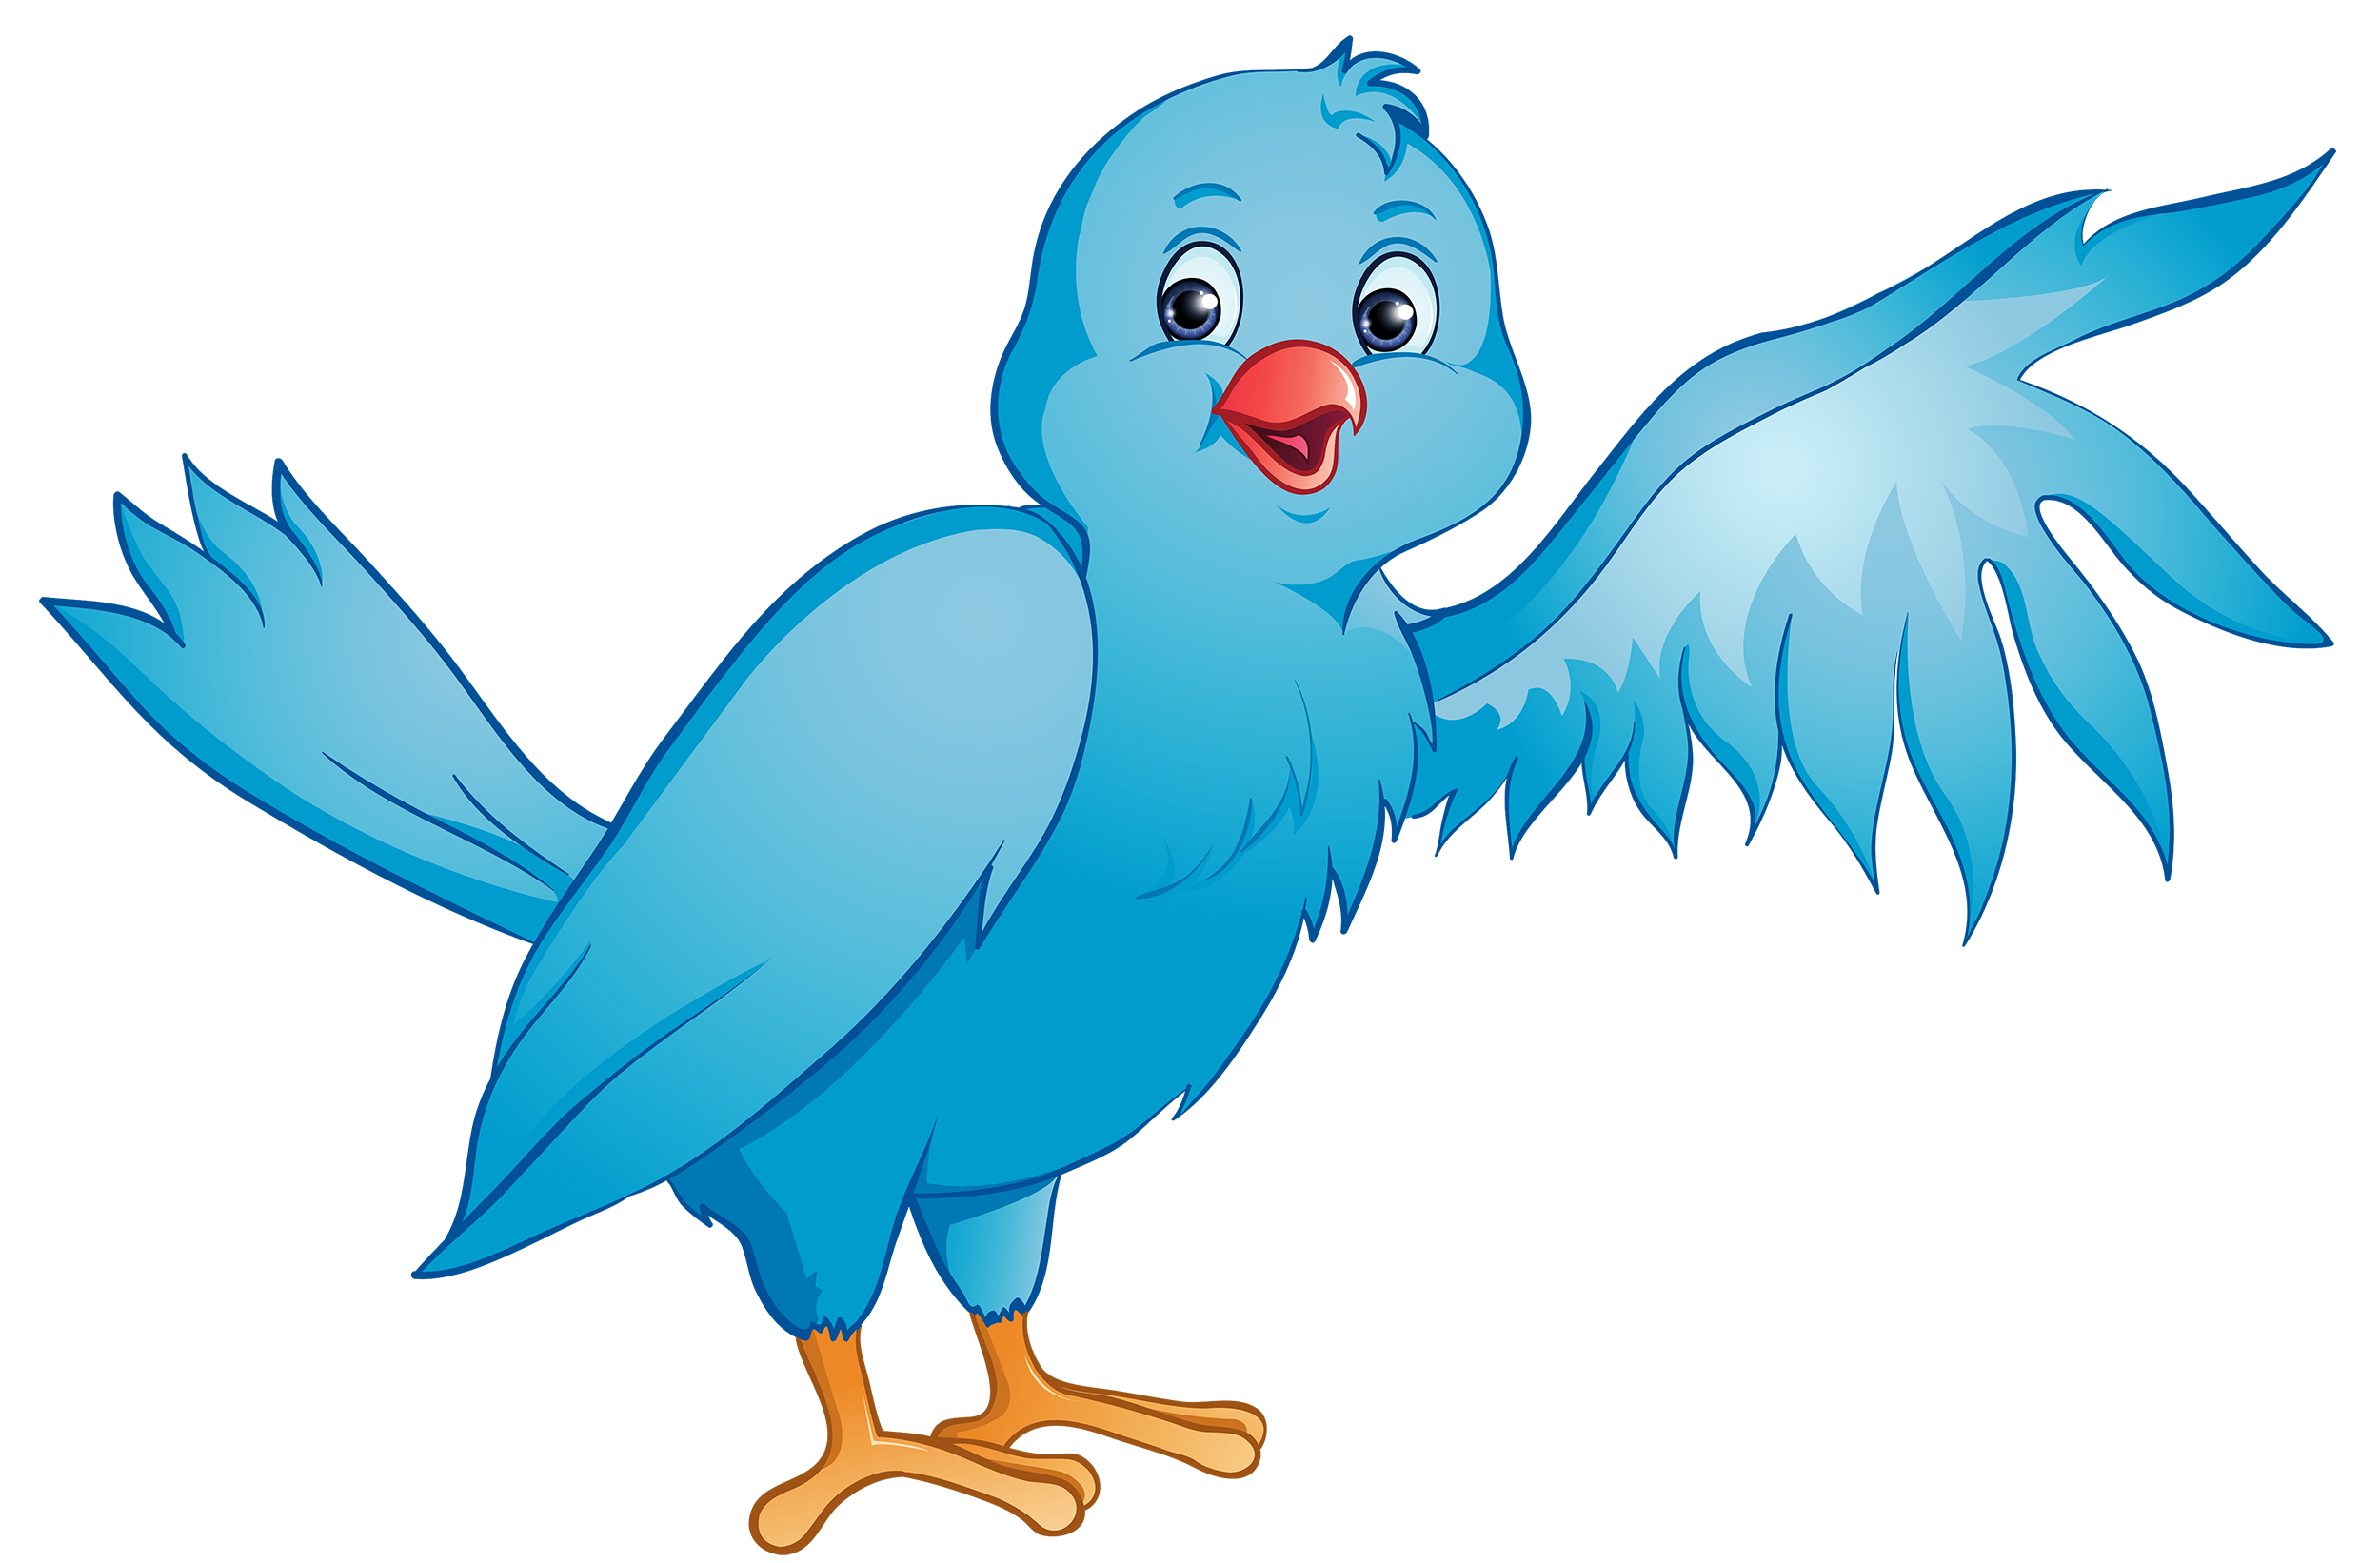 Blue clipart best web. Cartoon bird png picture library download